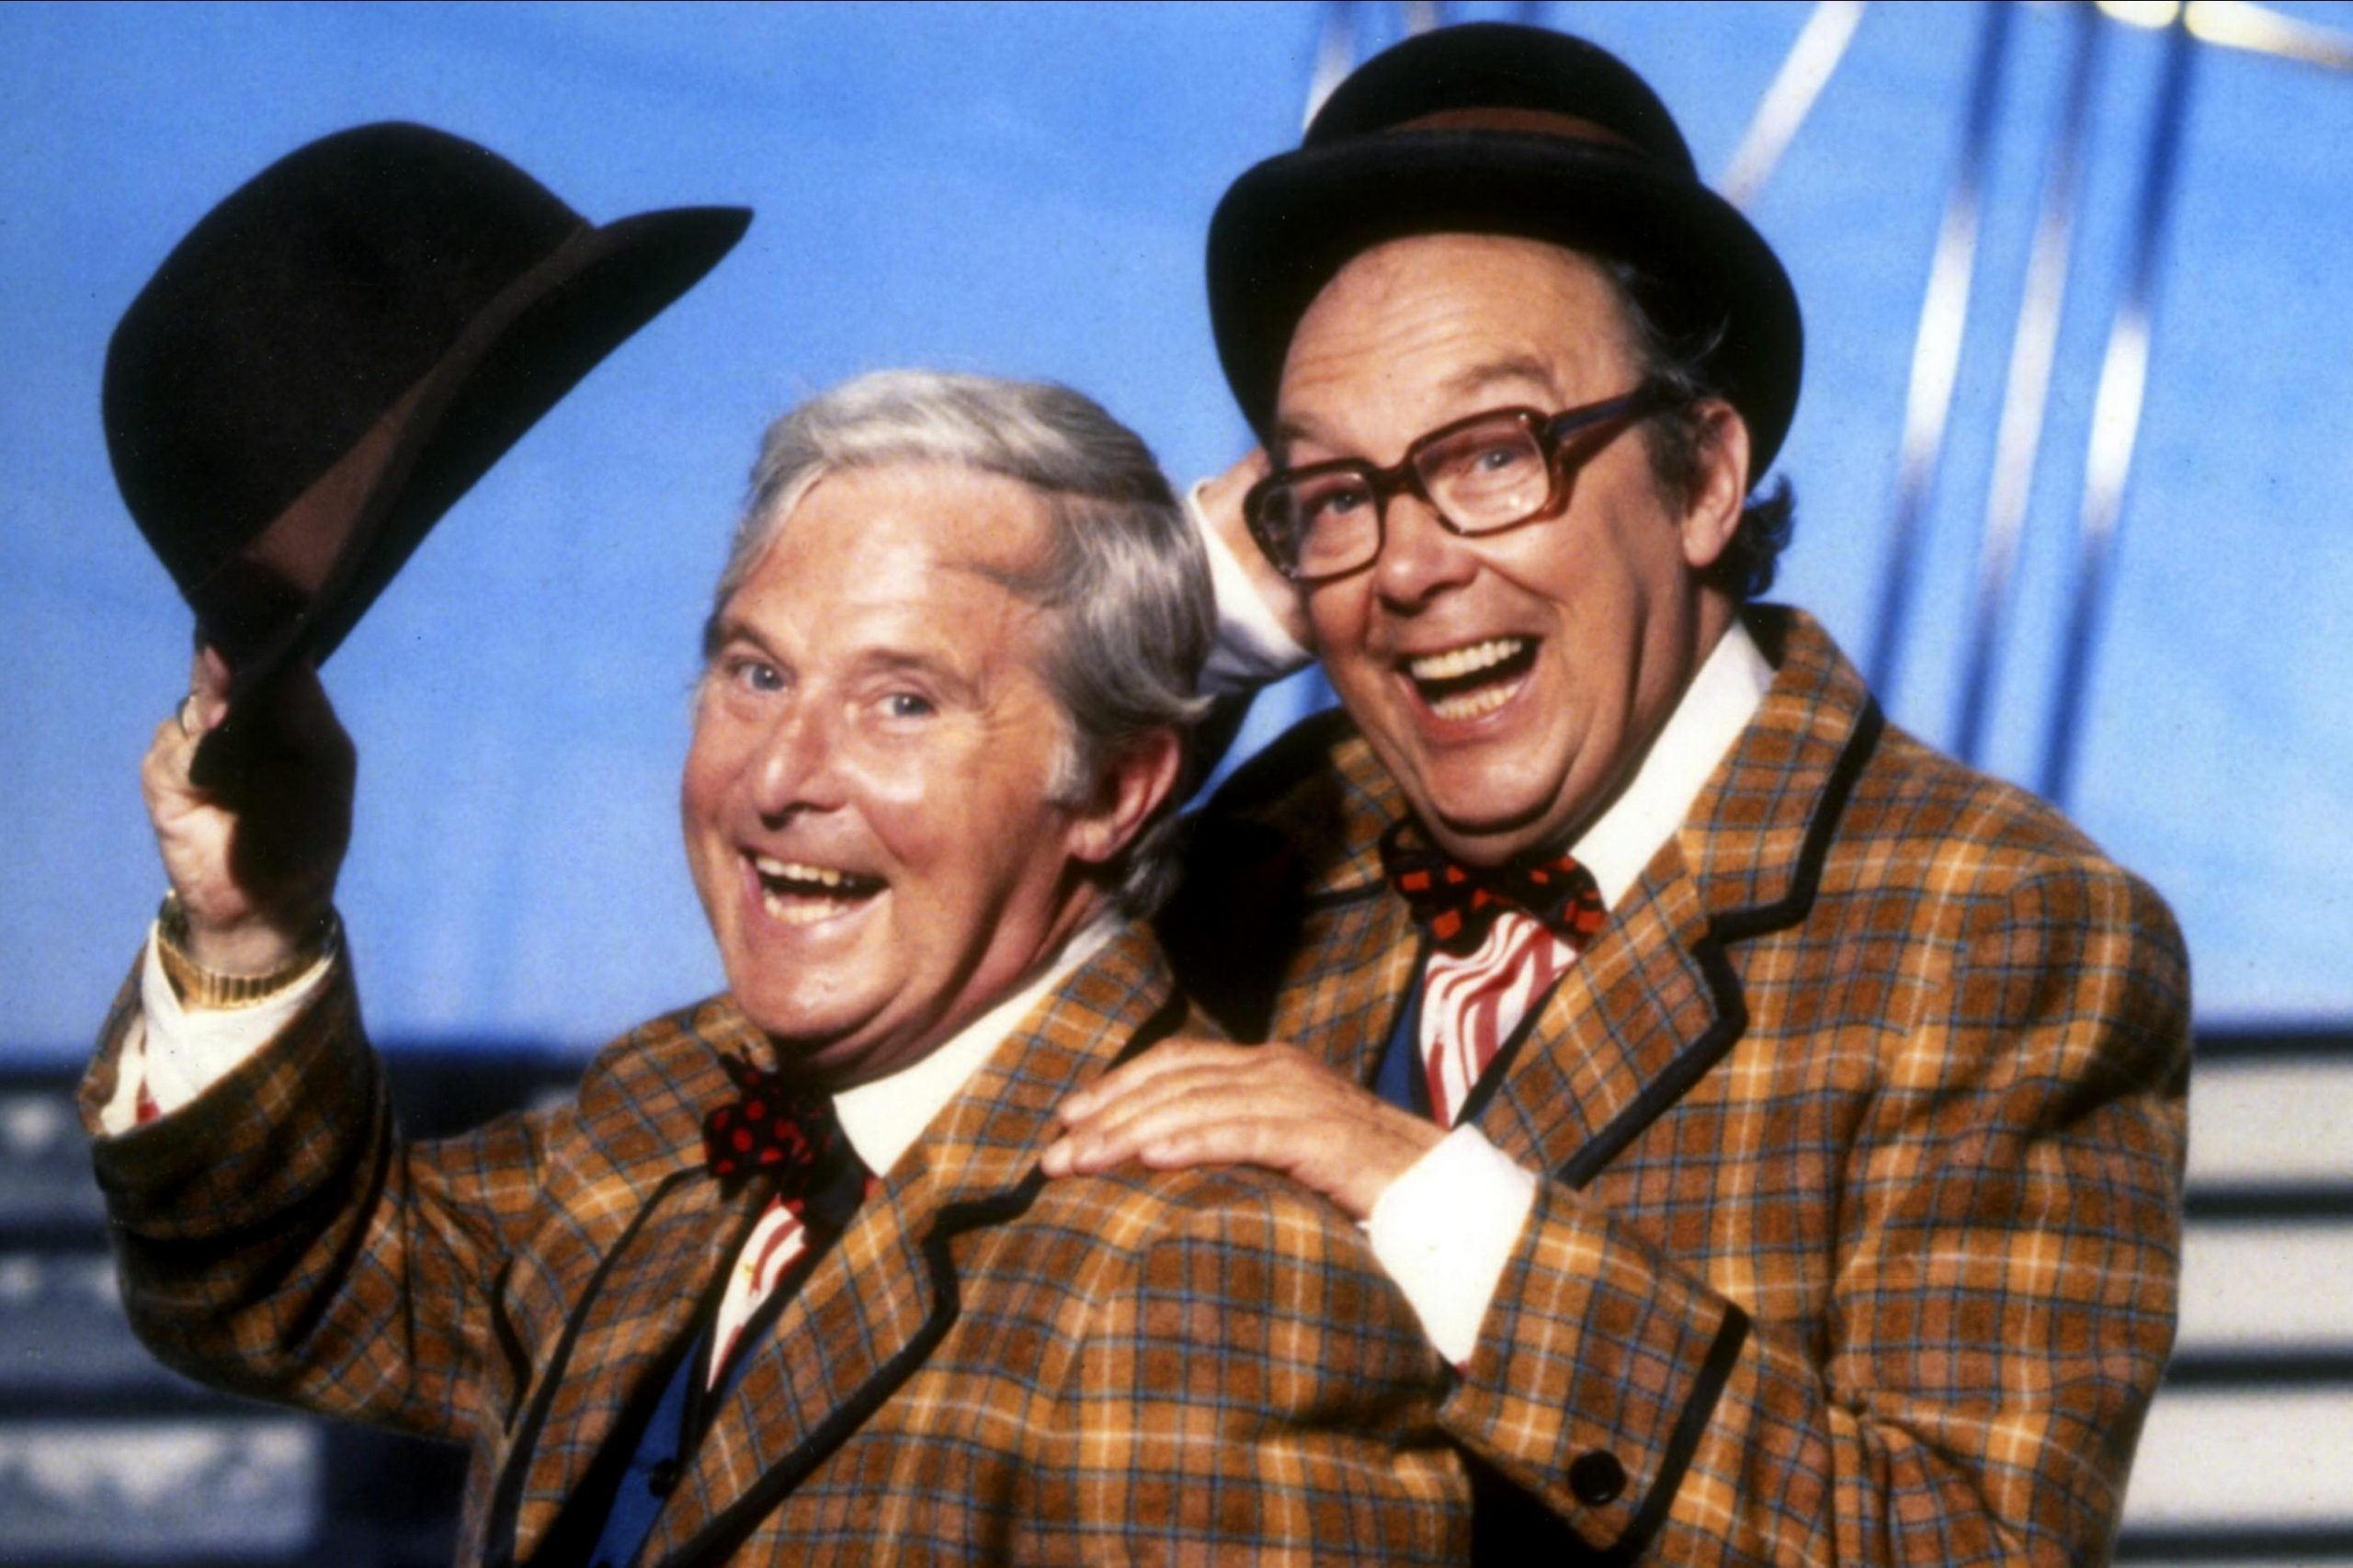 2Fmethode2Ftimes2Fprod2Fweb2Fbin2F5bd67102 f0de 11e8 8c84 29b2667b0b46 scaled 12 Classic Comedy Shows From When We Grew Up - Which Was Your Favourite?